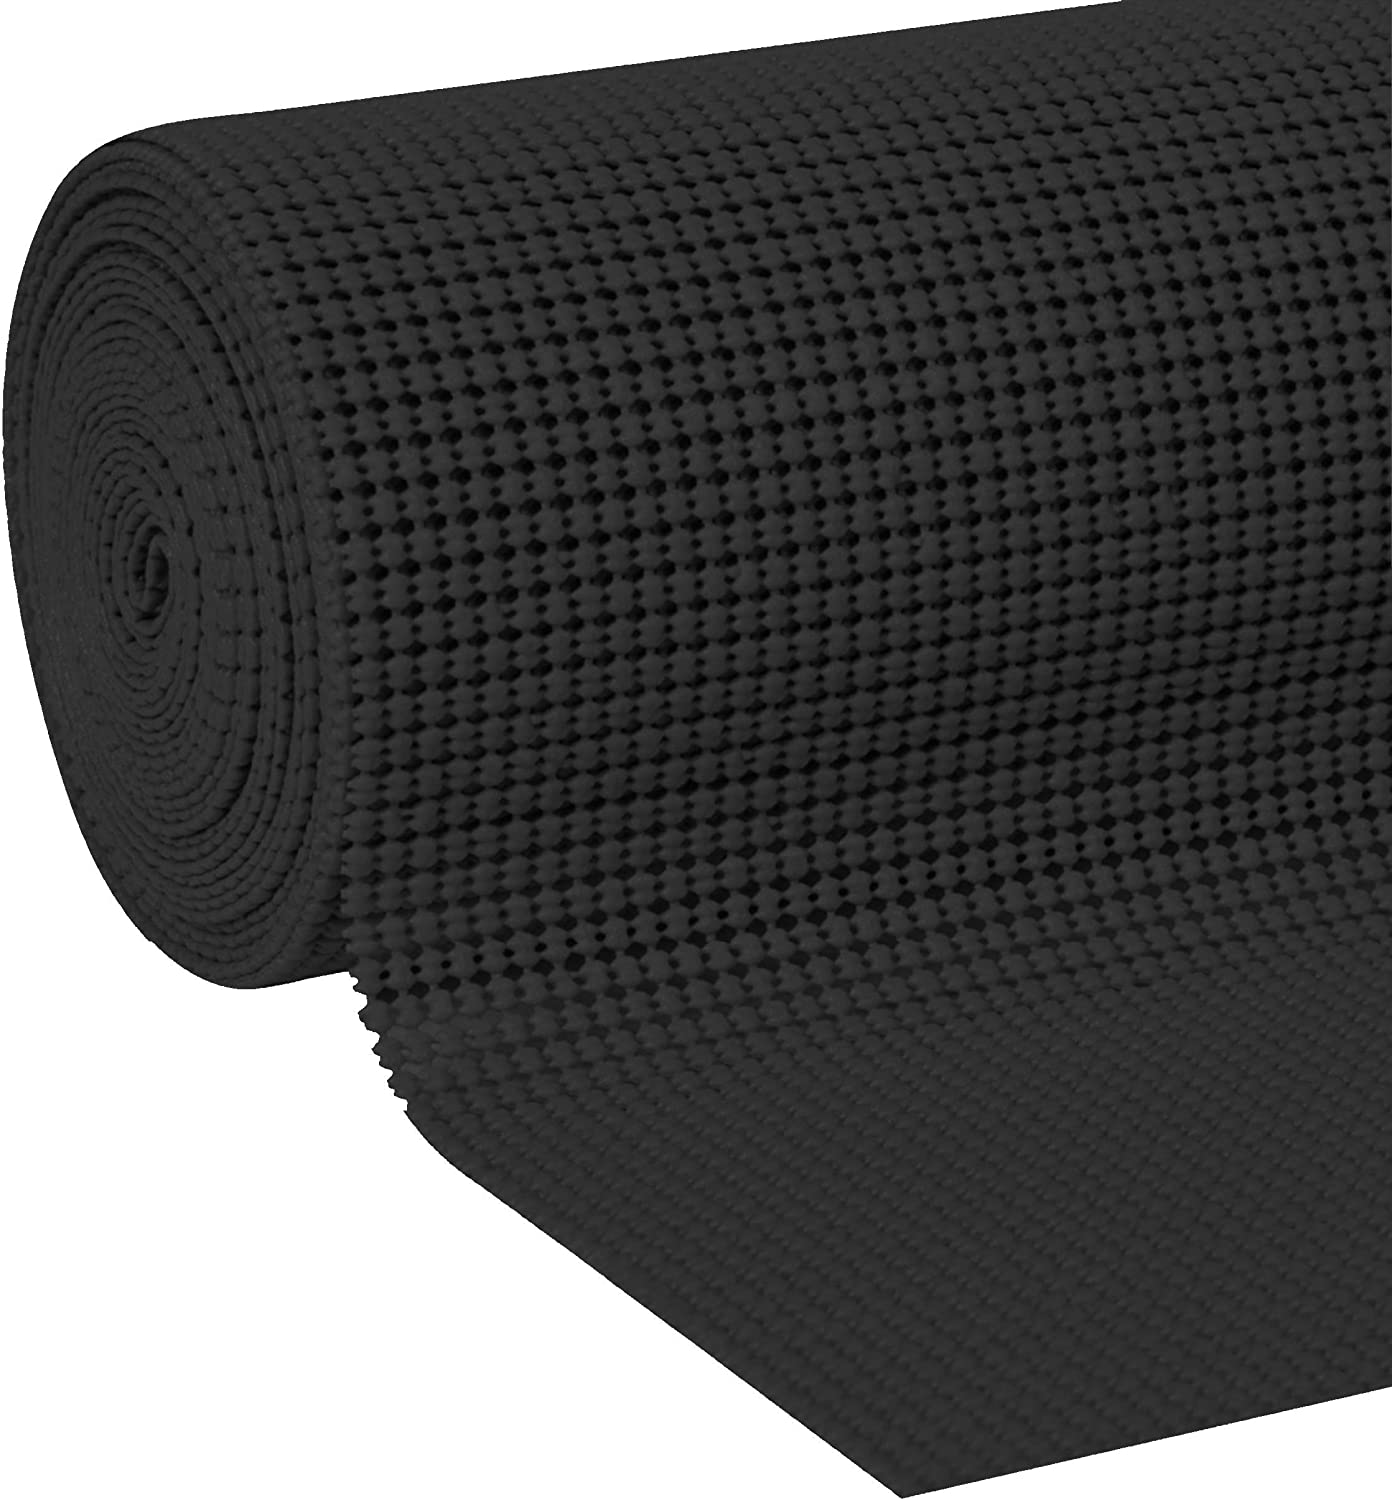 """KOLOX Premium Drawer and Shelf Liner, Non Adhesive, Strong and Durable, for Shelves, Drawers, Cabinets, Kitchen, Storage and Desks and More (Black, 17.5"""" x 10')"""